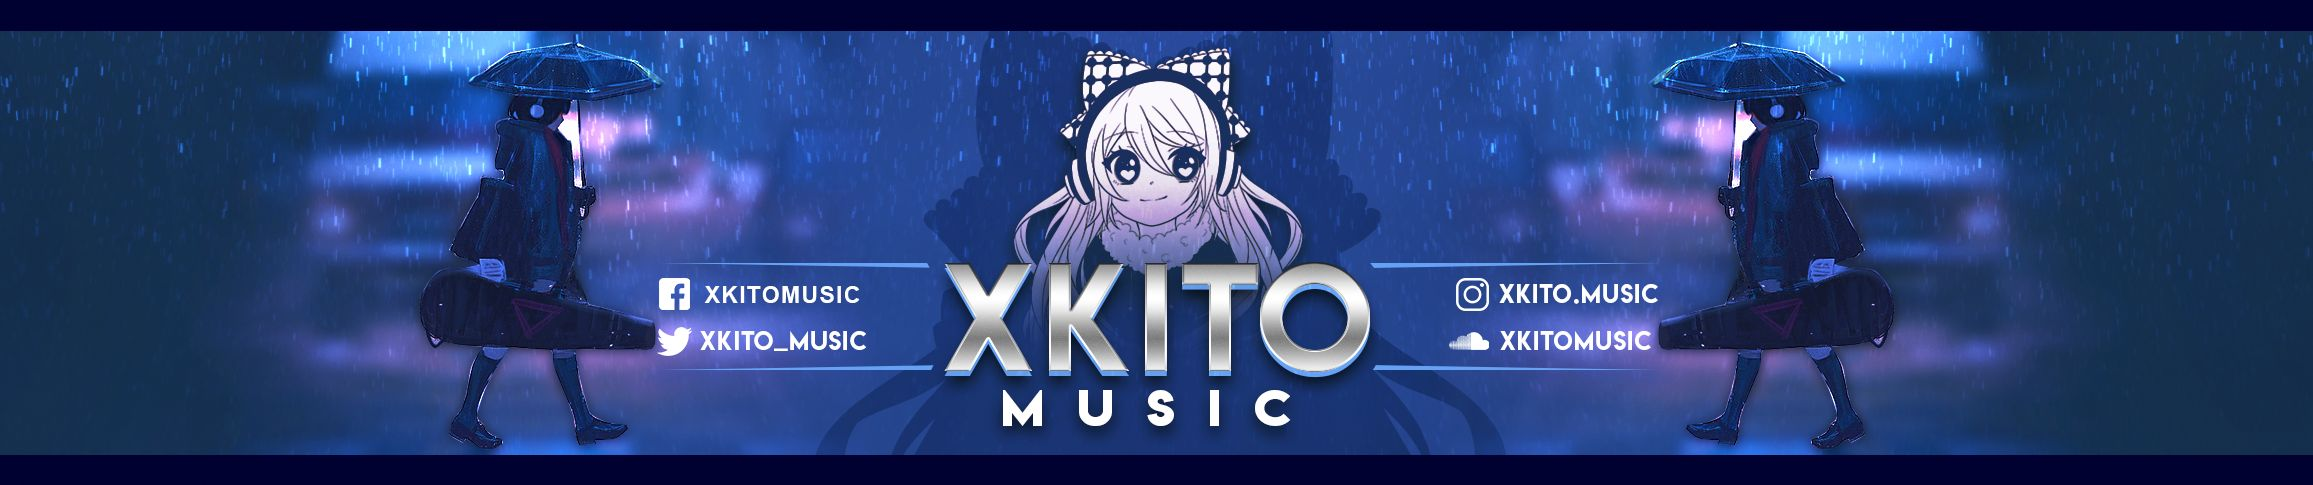 xKito Music | Free Listening on SoundCloud